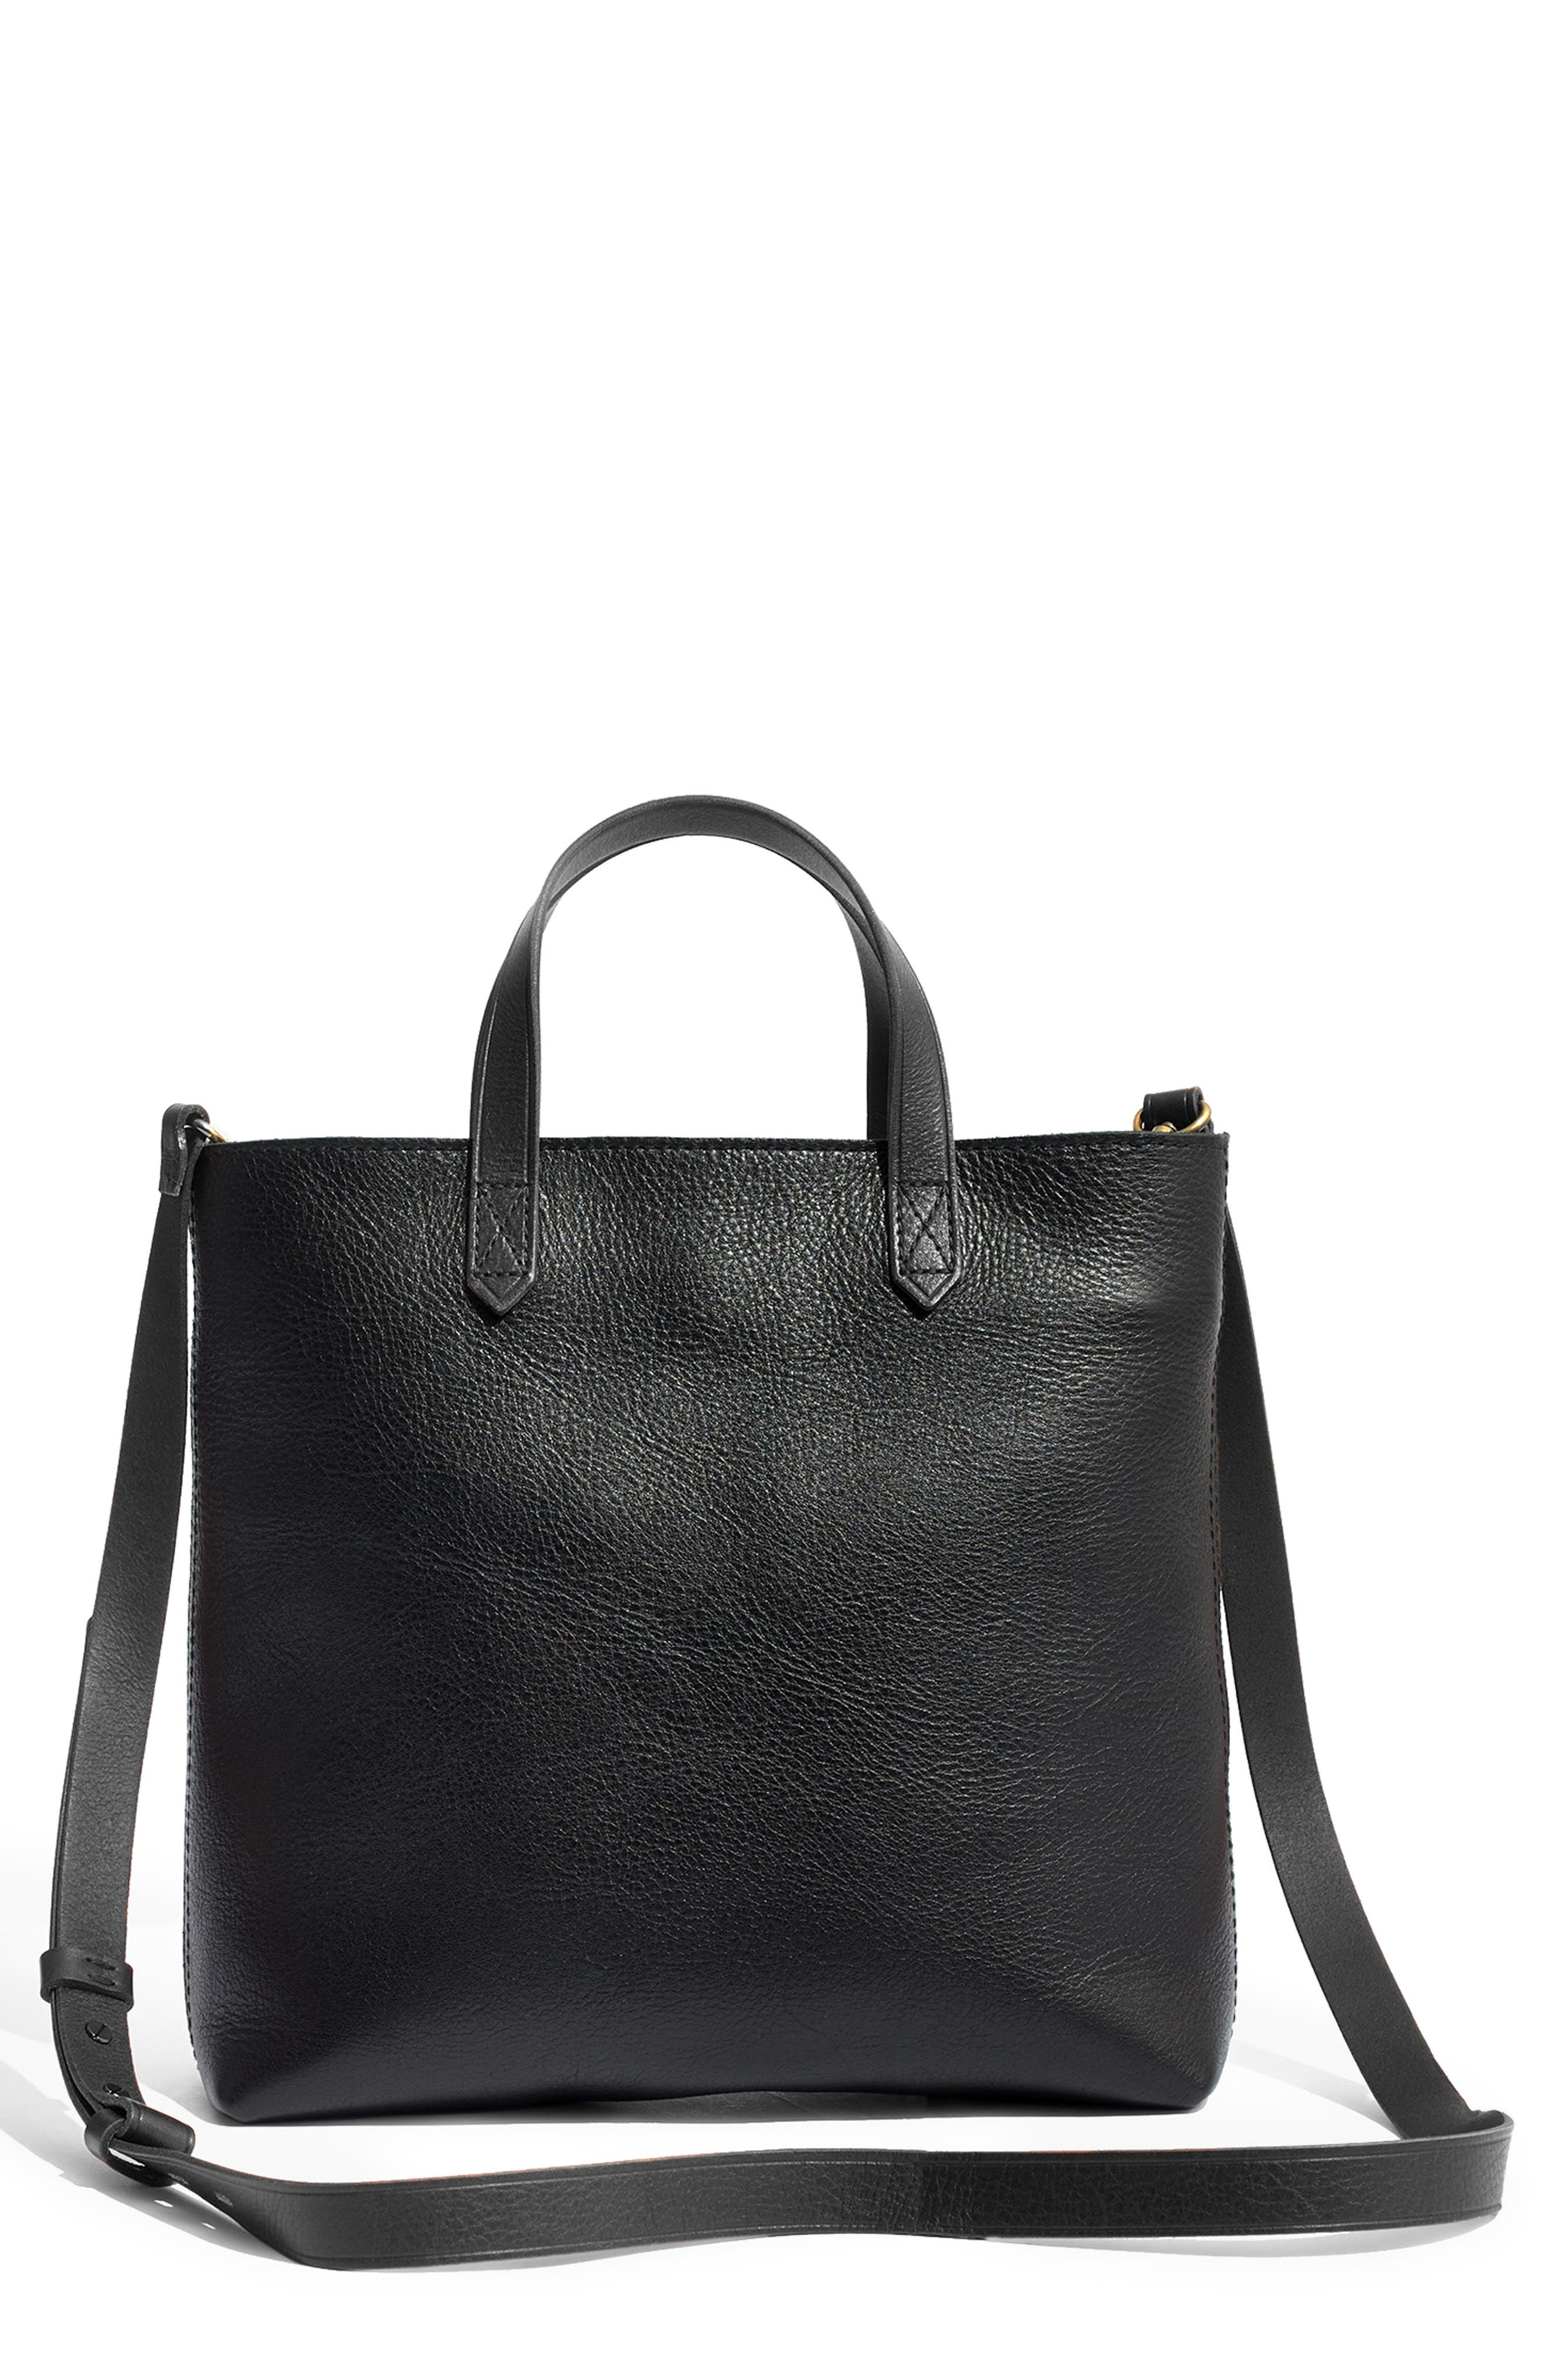 MADEWELL, Small Transport Leather Crossbody Tote, Main thumbnail 1, color, TRUE BLACK